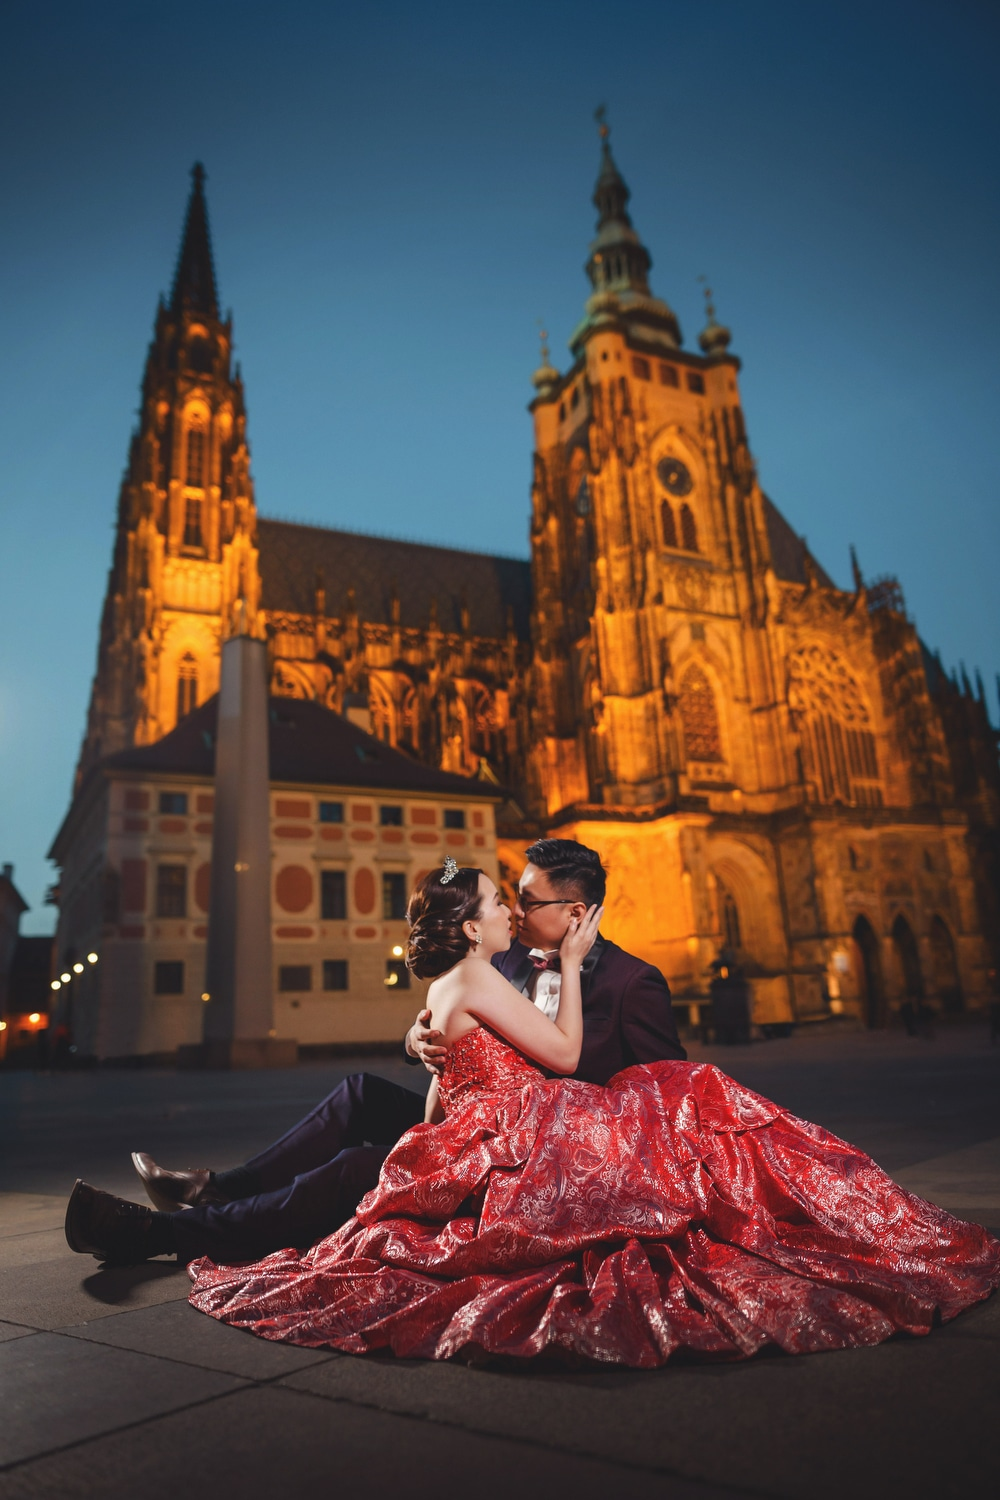 Prague Castle, young couple sitting, embracing, red dress, night image, St. Vitus, blue sky